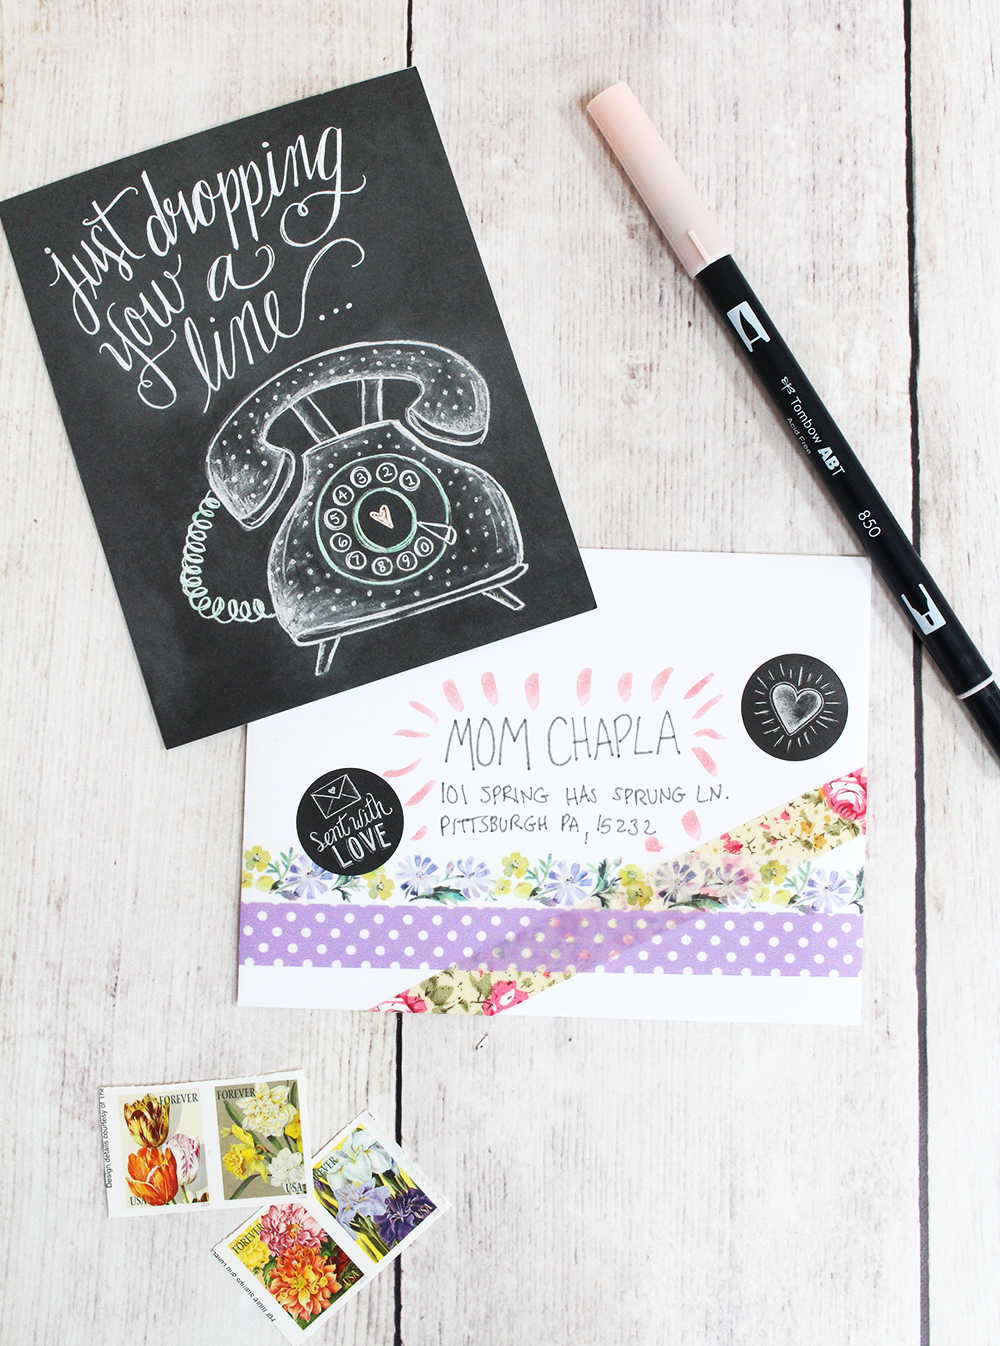 Snail Mail Inspiration | Envelope decorating | hand-drawn greeting card